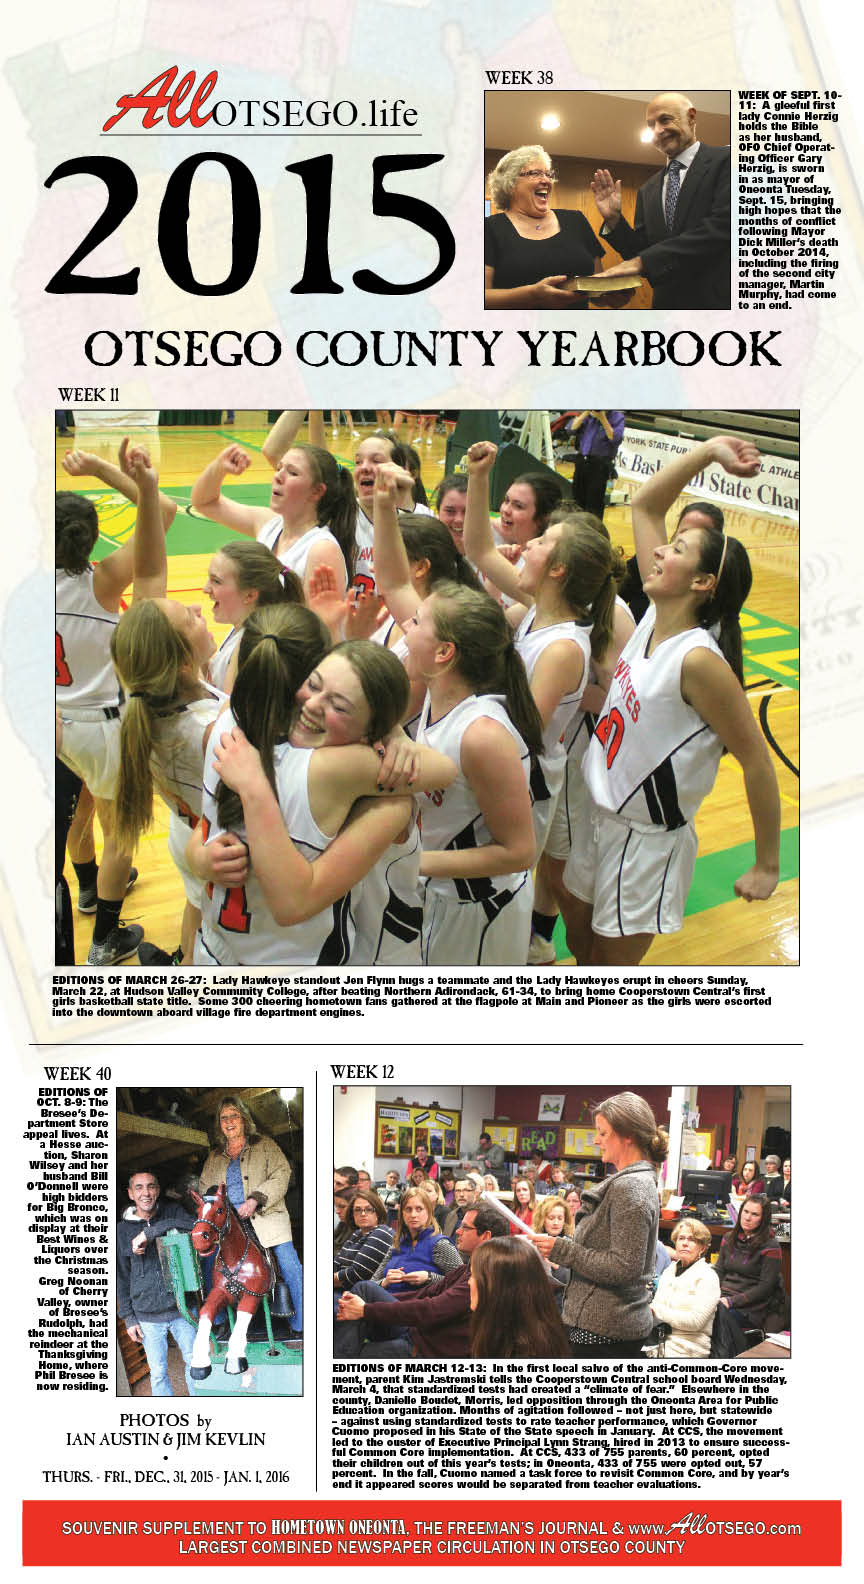 Relive the joys, challenges and accomplishments in the 2015 Otsego County Yearbook, in this week's editions of Hometown Oneonta and The Freeman's Journal.